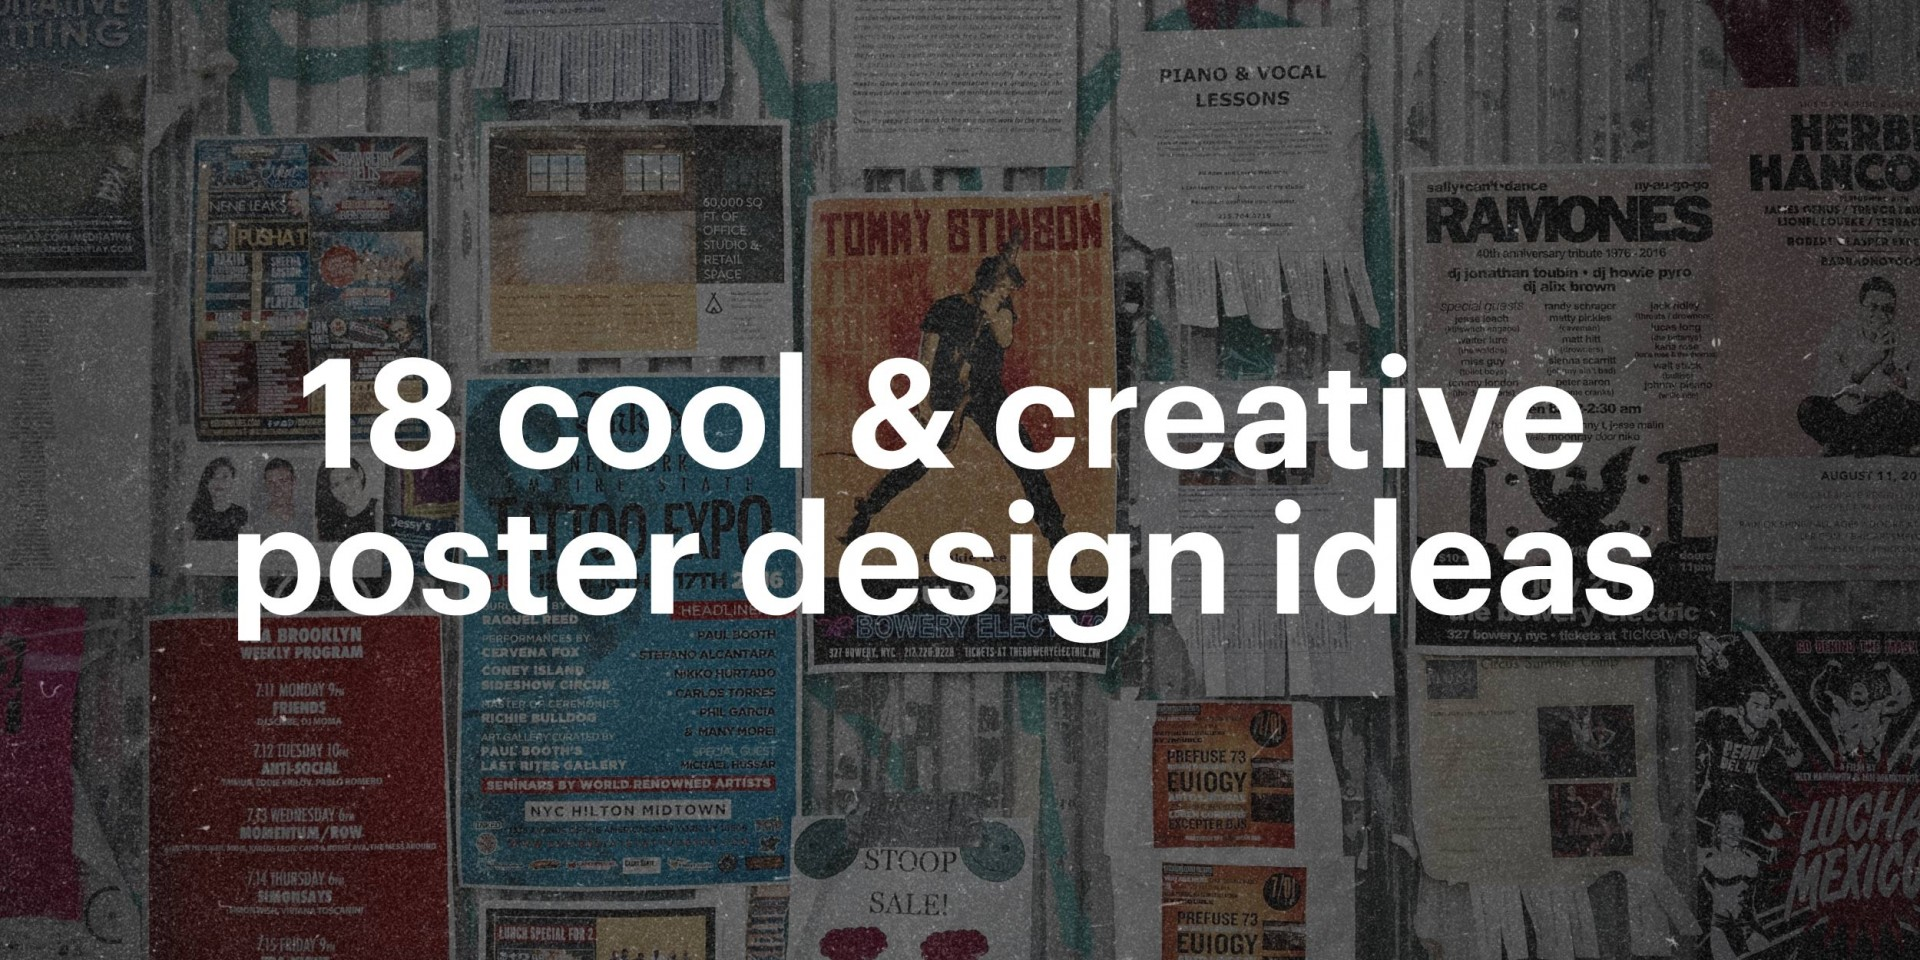 016 Research Paper Cool Creative Poster Design Ideas Best Topics For In Unbelievable Marketing 1920